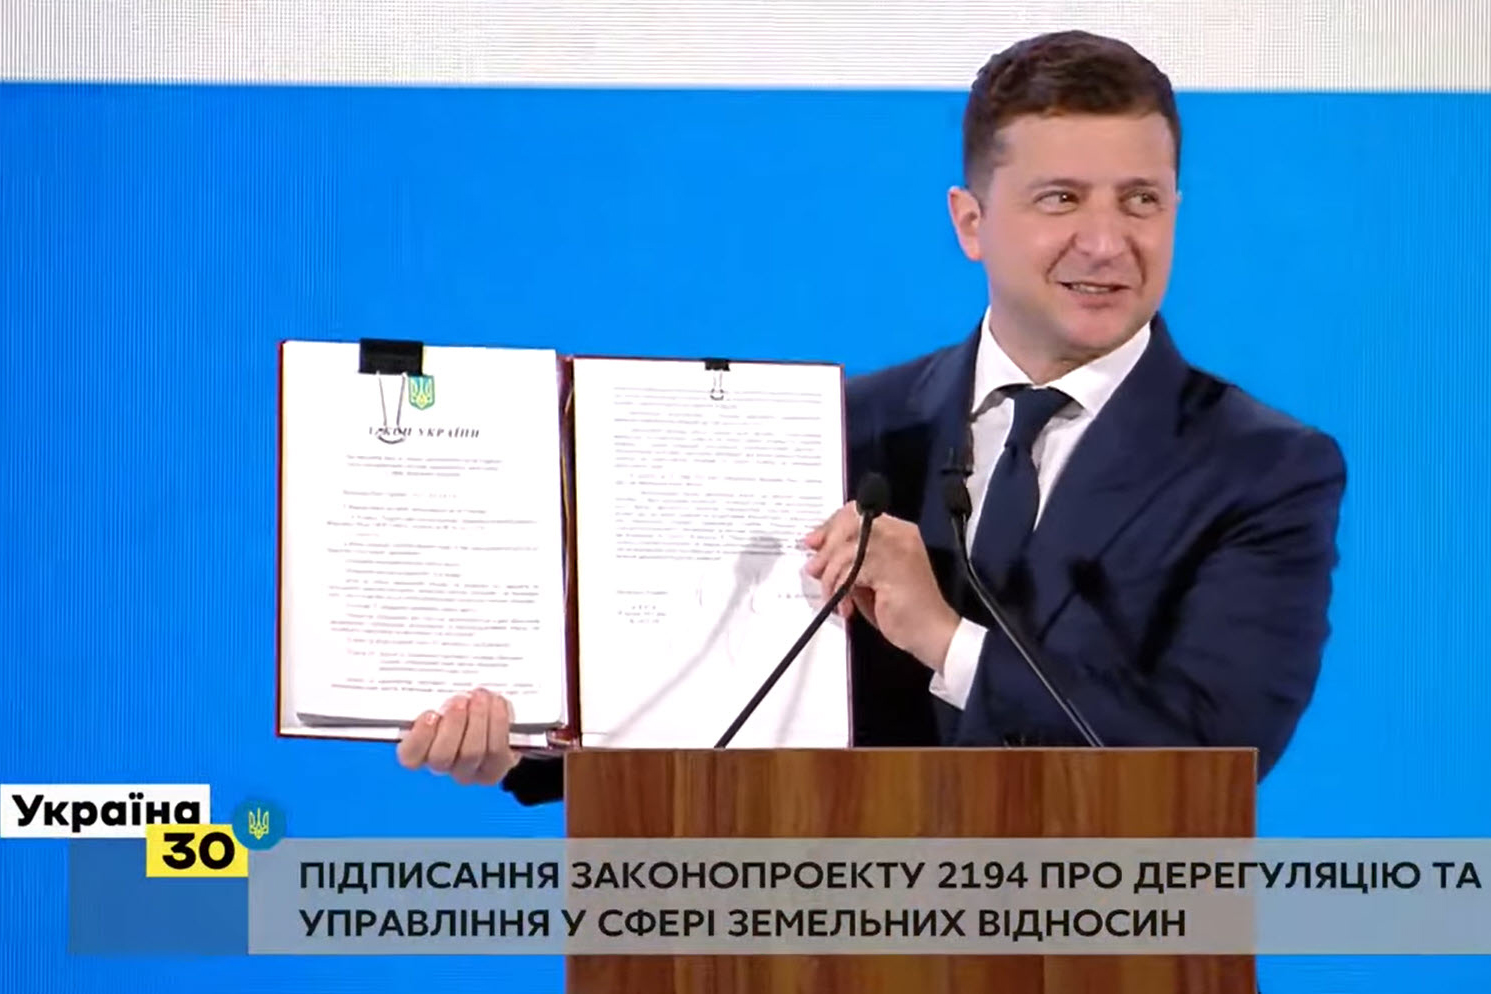 President of Ukraine Volodymyr Zelenskyy holding the newly signed law On Amending the Land Code of Ukraine and Other Laws on Improving Administration System and Land Relation Deregulation